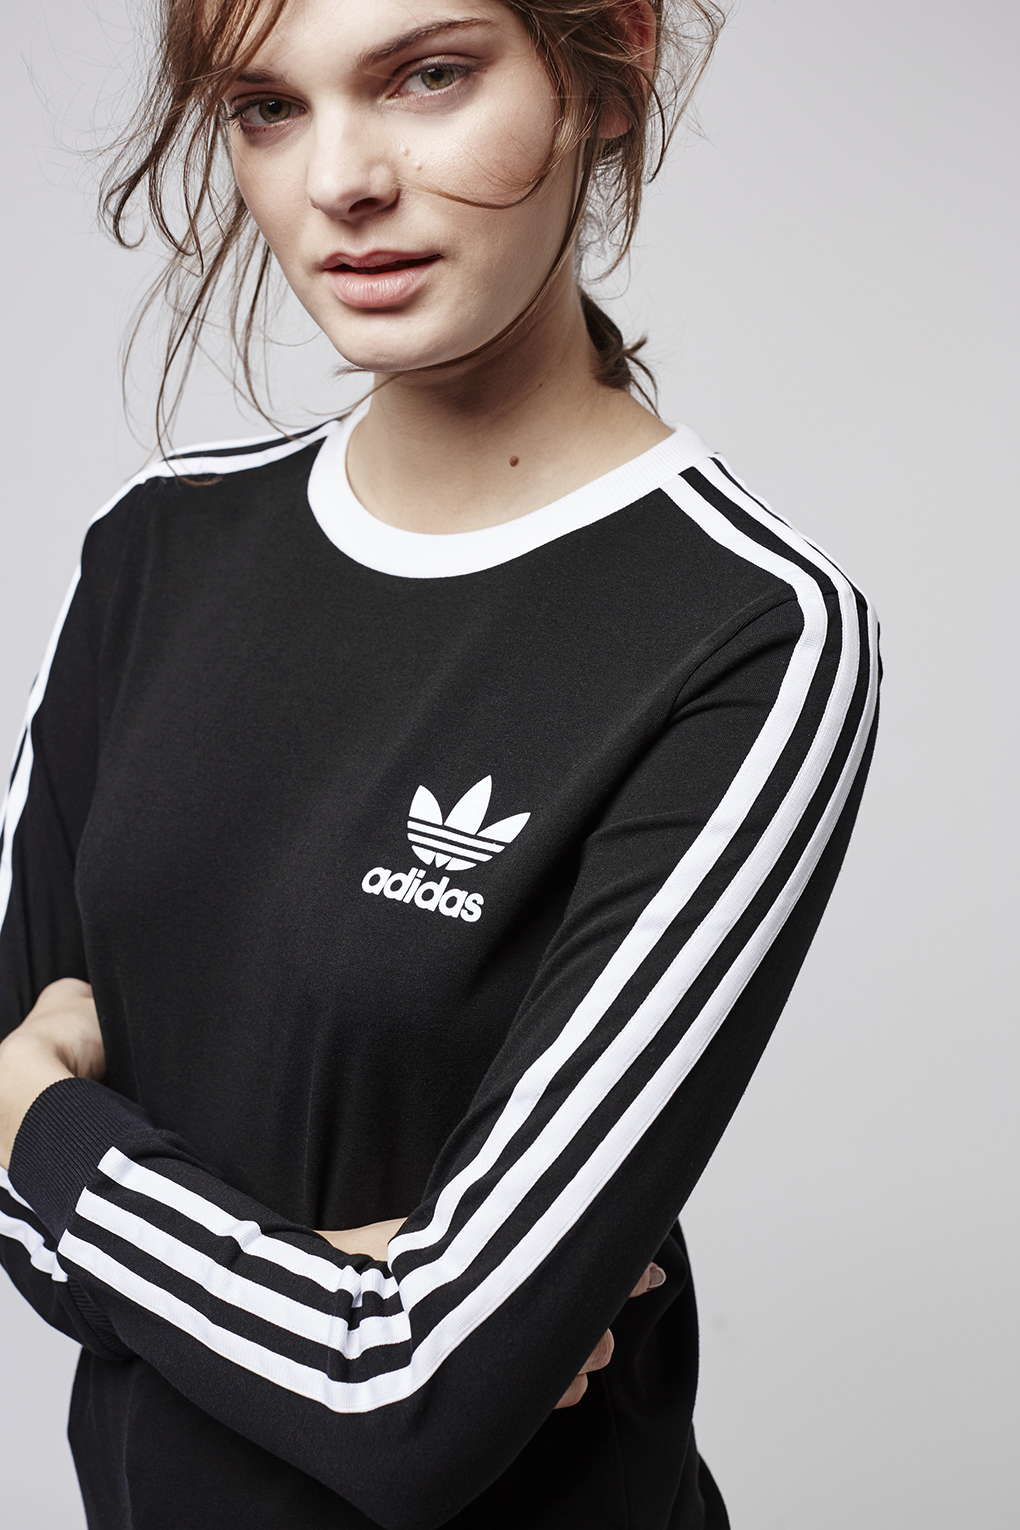 Lyst - TOPSHOP Three Stripe Long Sleeve Top Adidas Originals in Black 42339cc164